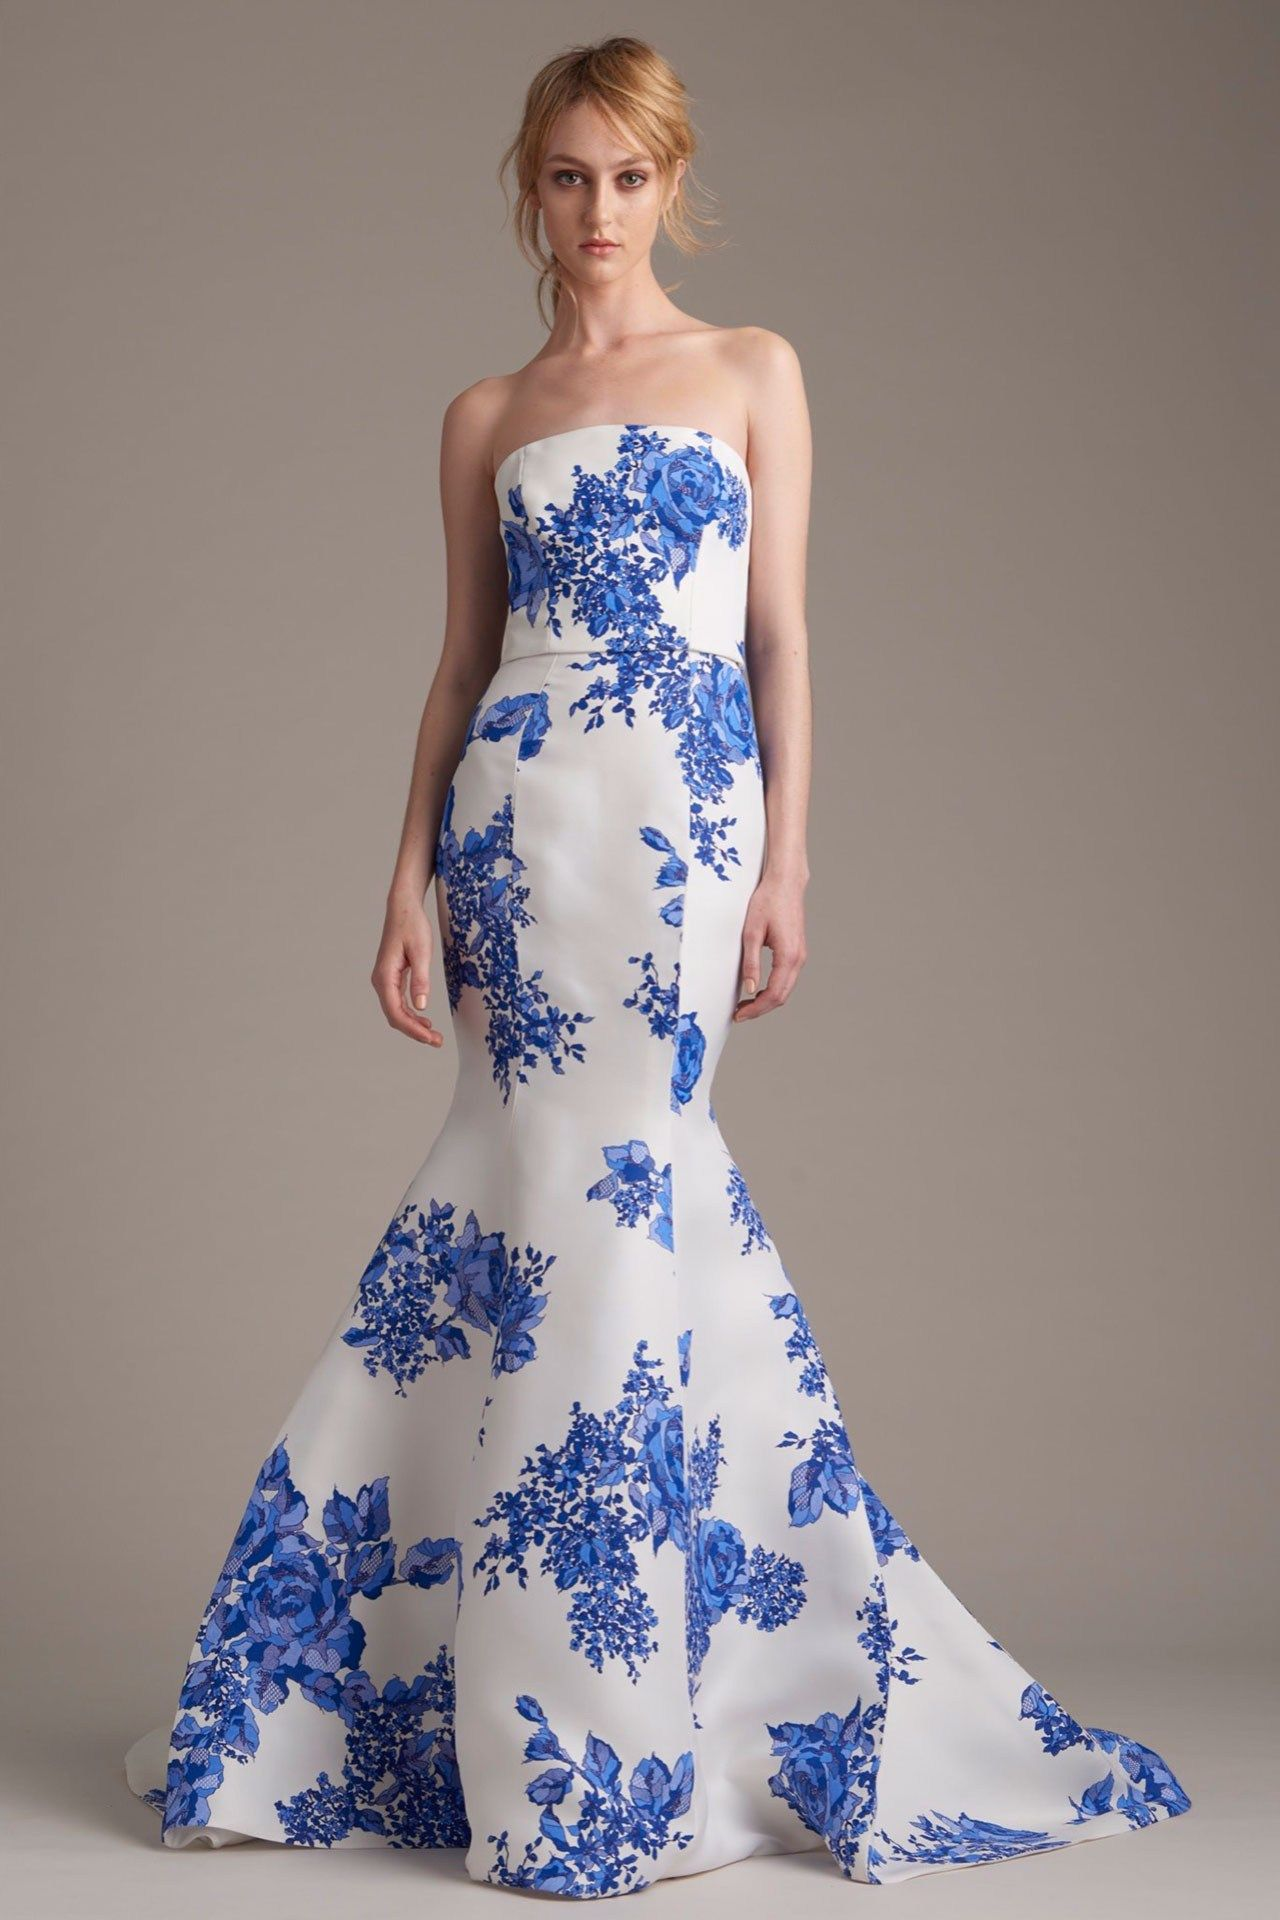 Floral wedding dress inspiration resort collections